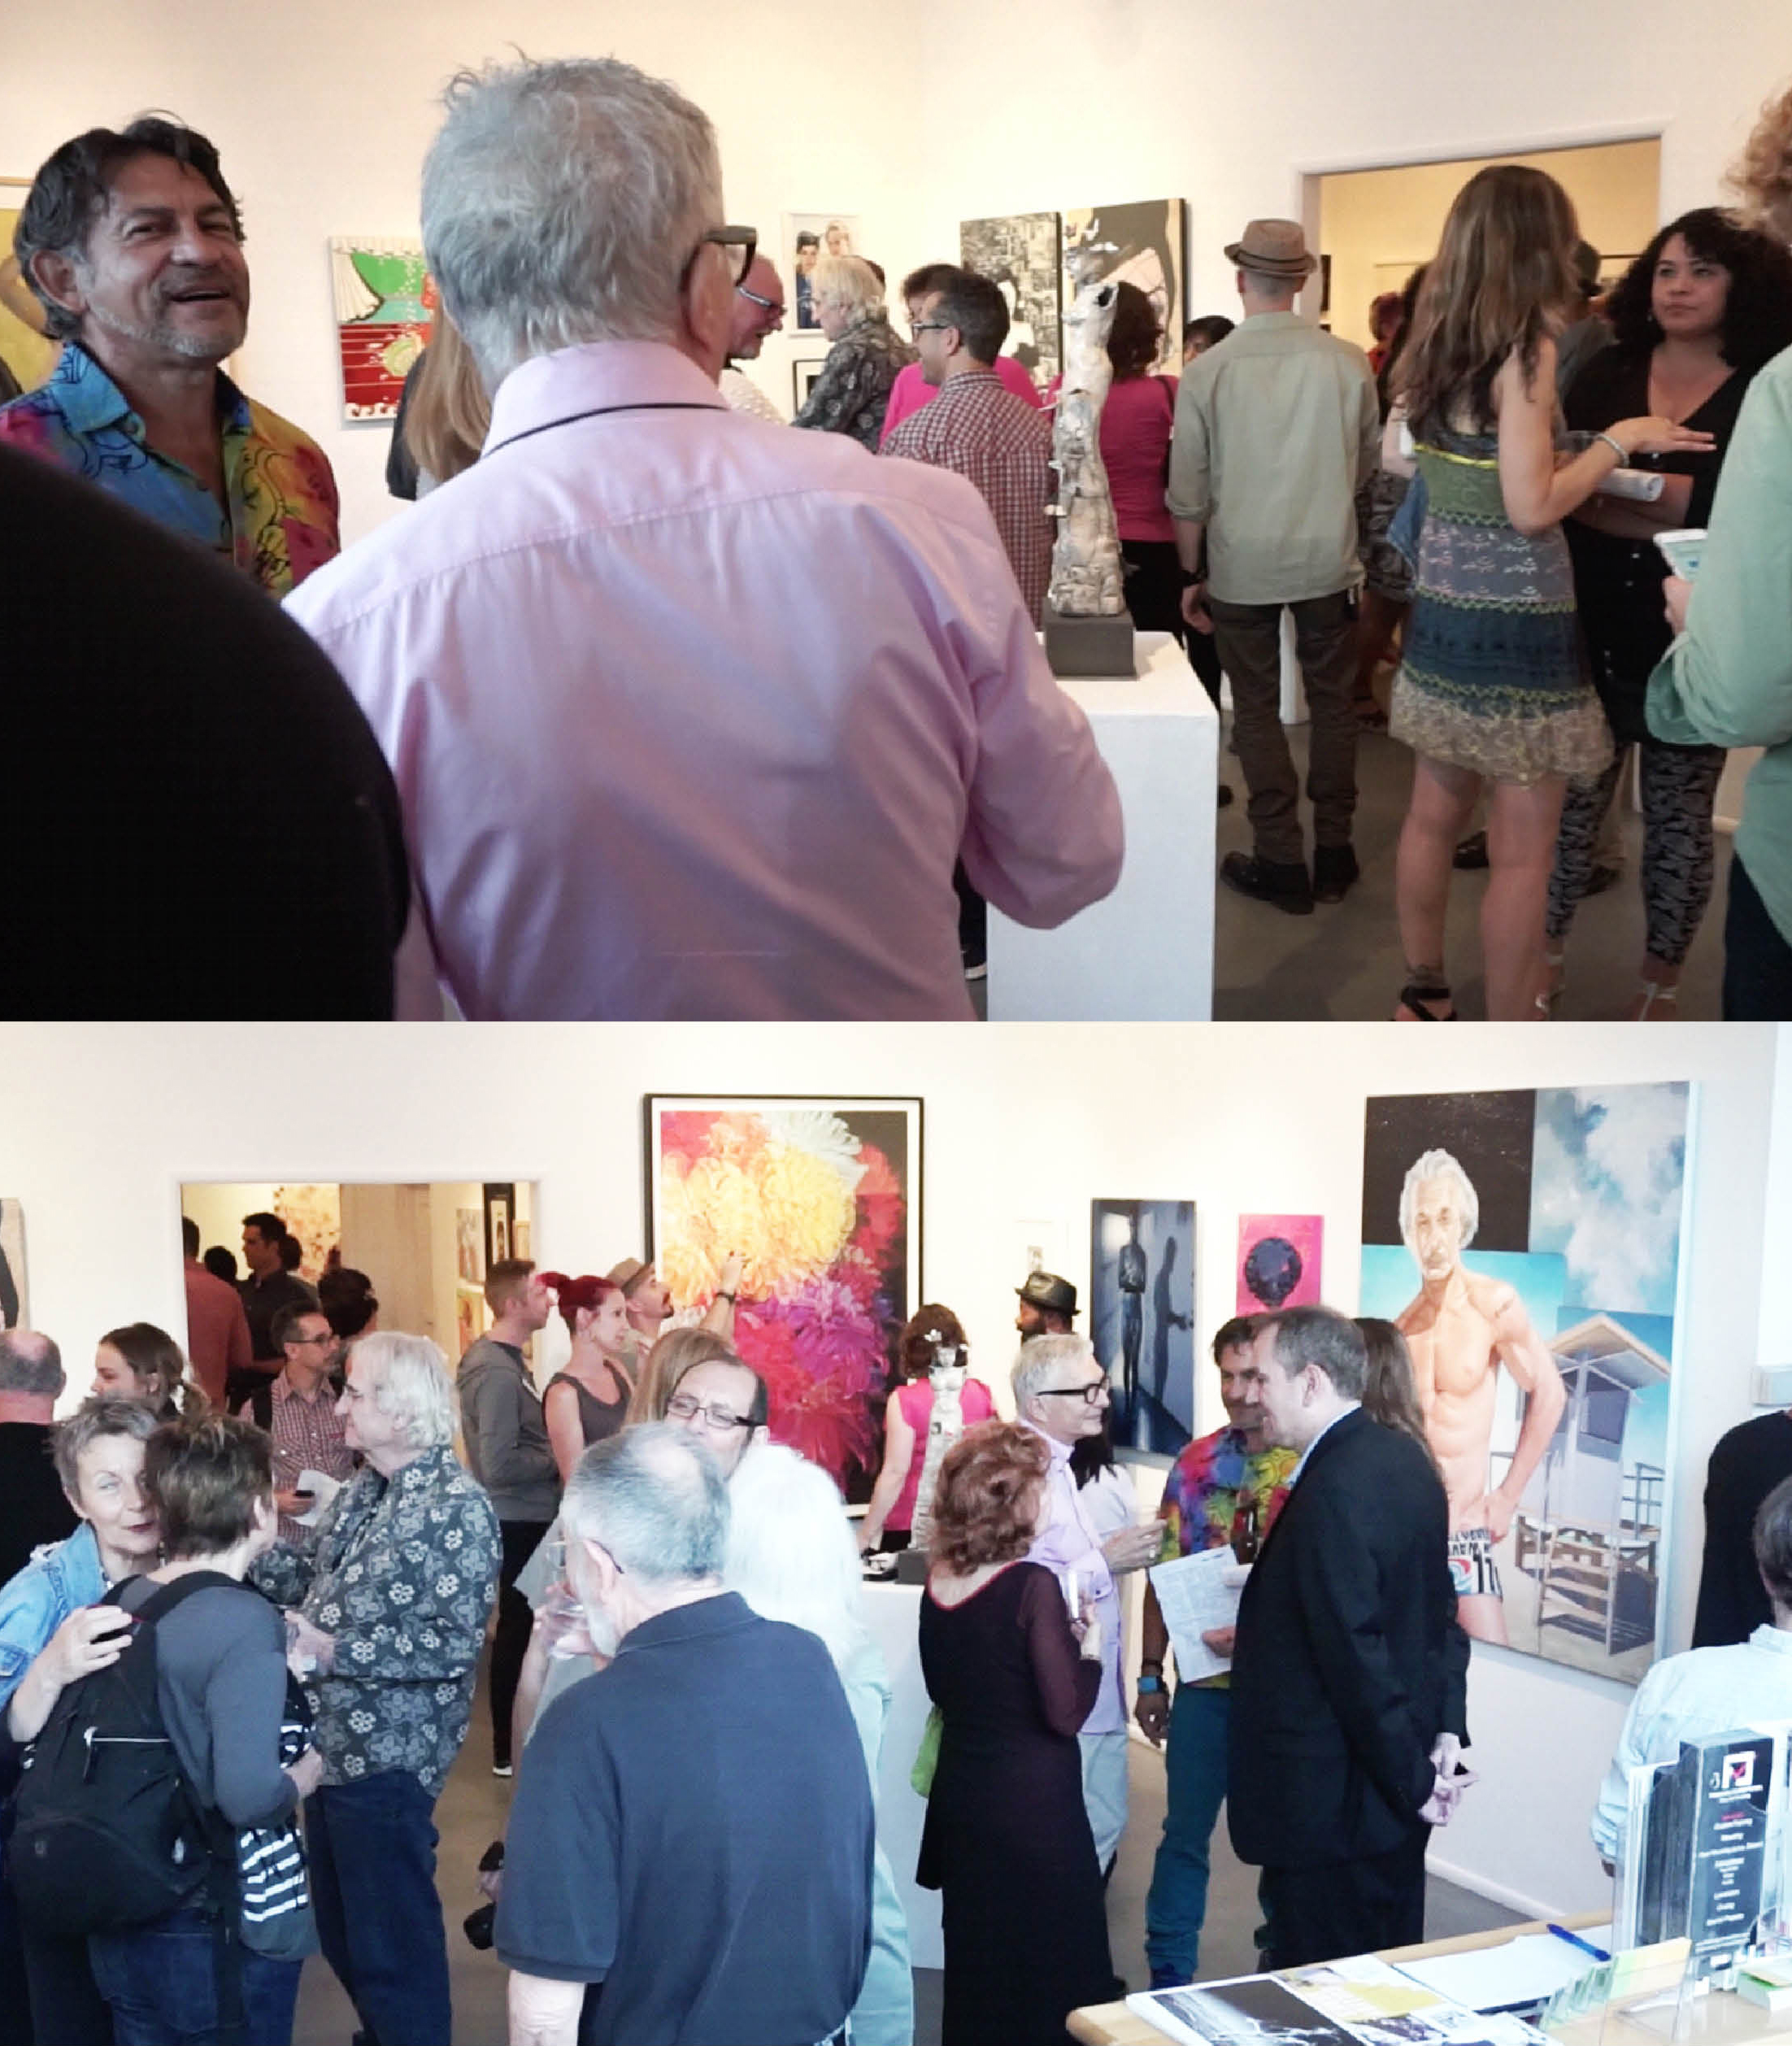 6-22-19 Out There exhibit at LA Art Association's Gallery 825, Opening reception, Photo by Mara Zaslov.jpg